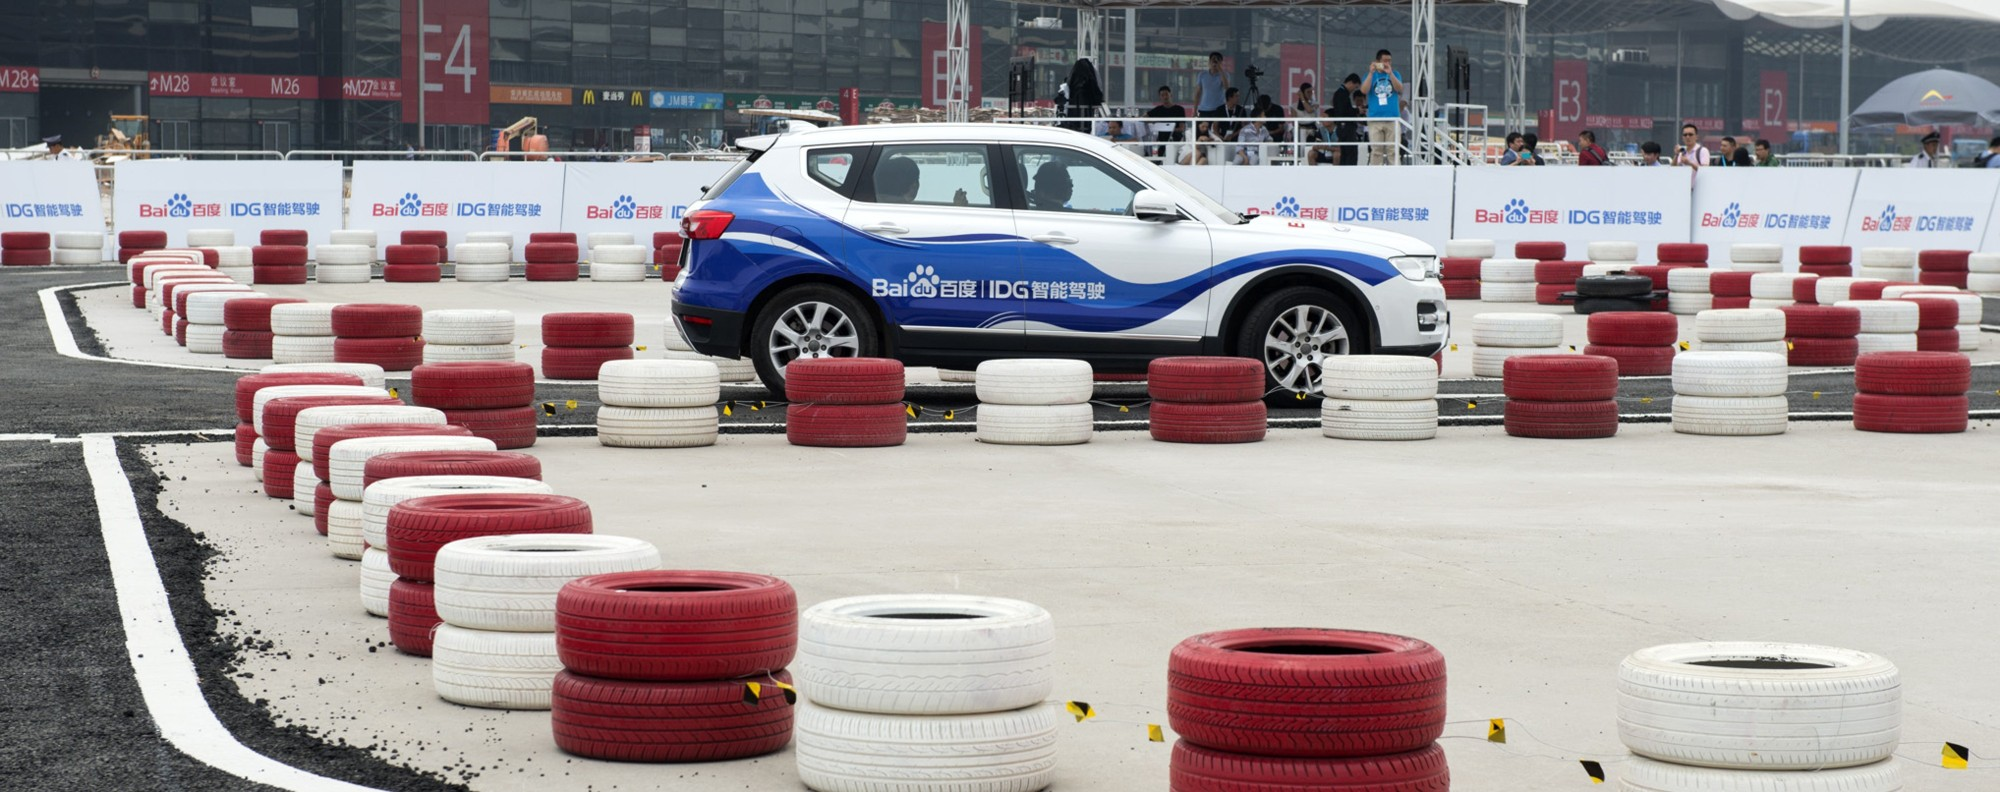 The autonomous vehicle tested at CES Asia in Shanghai.